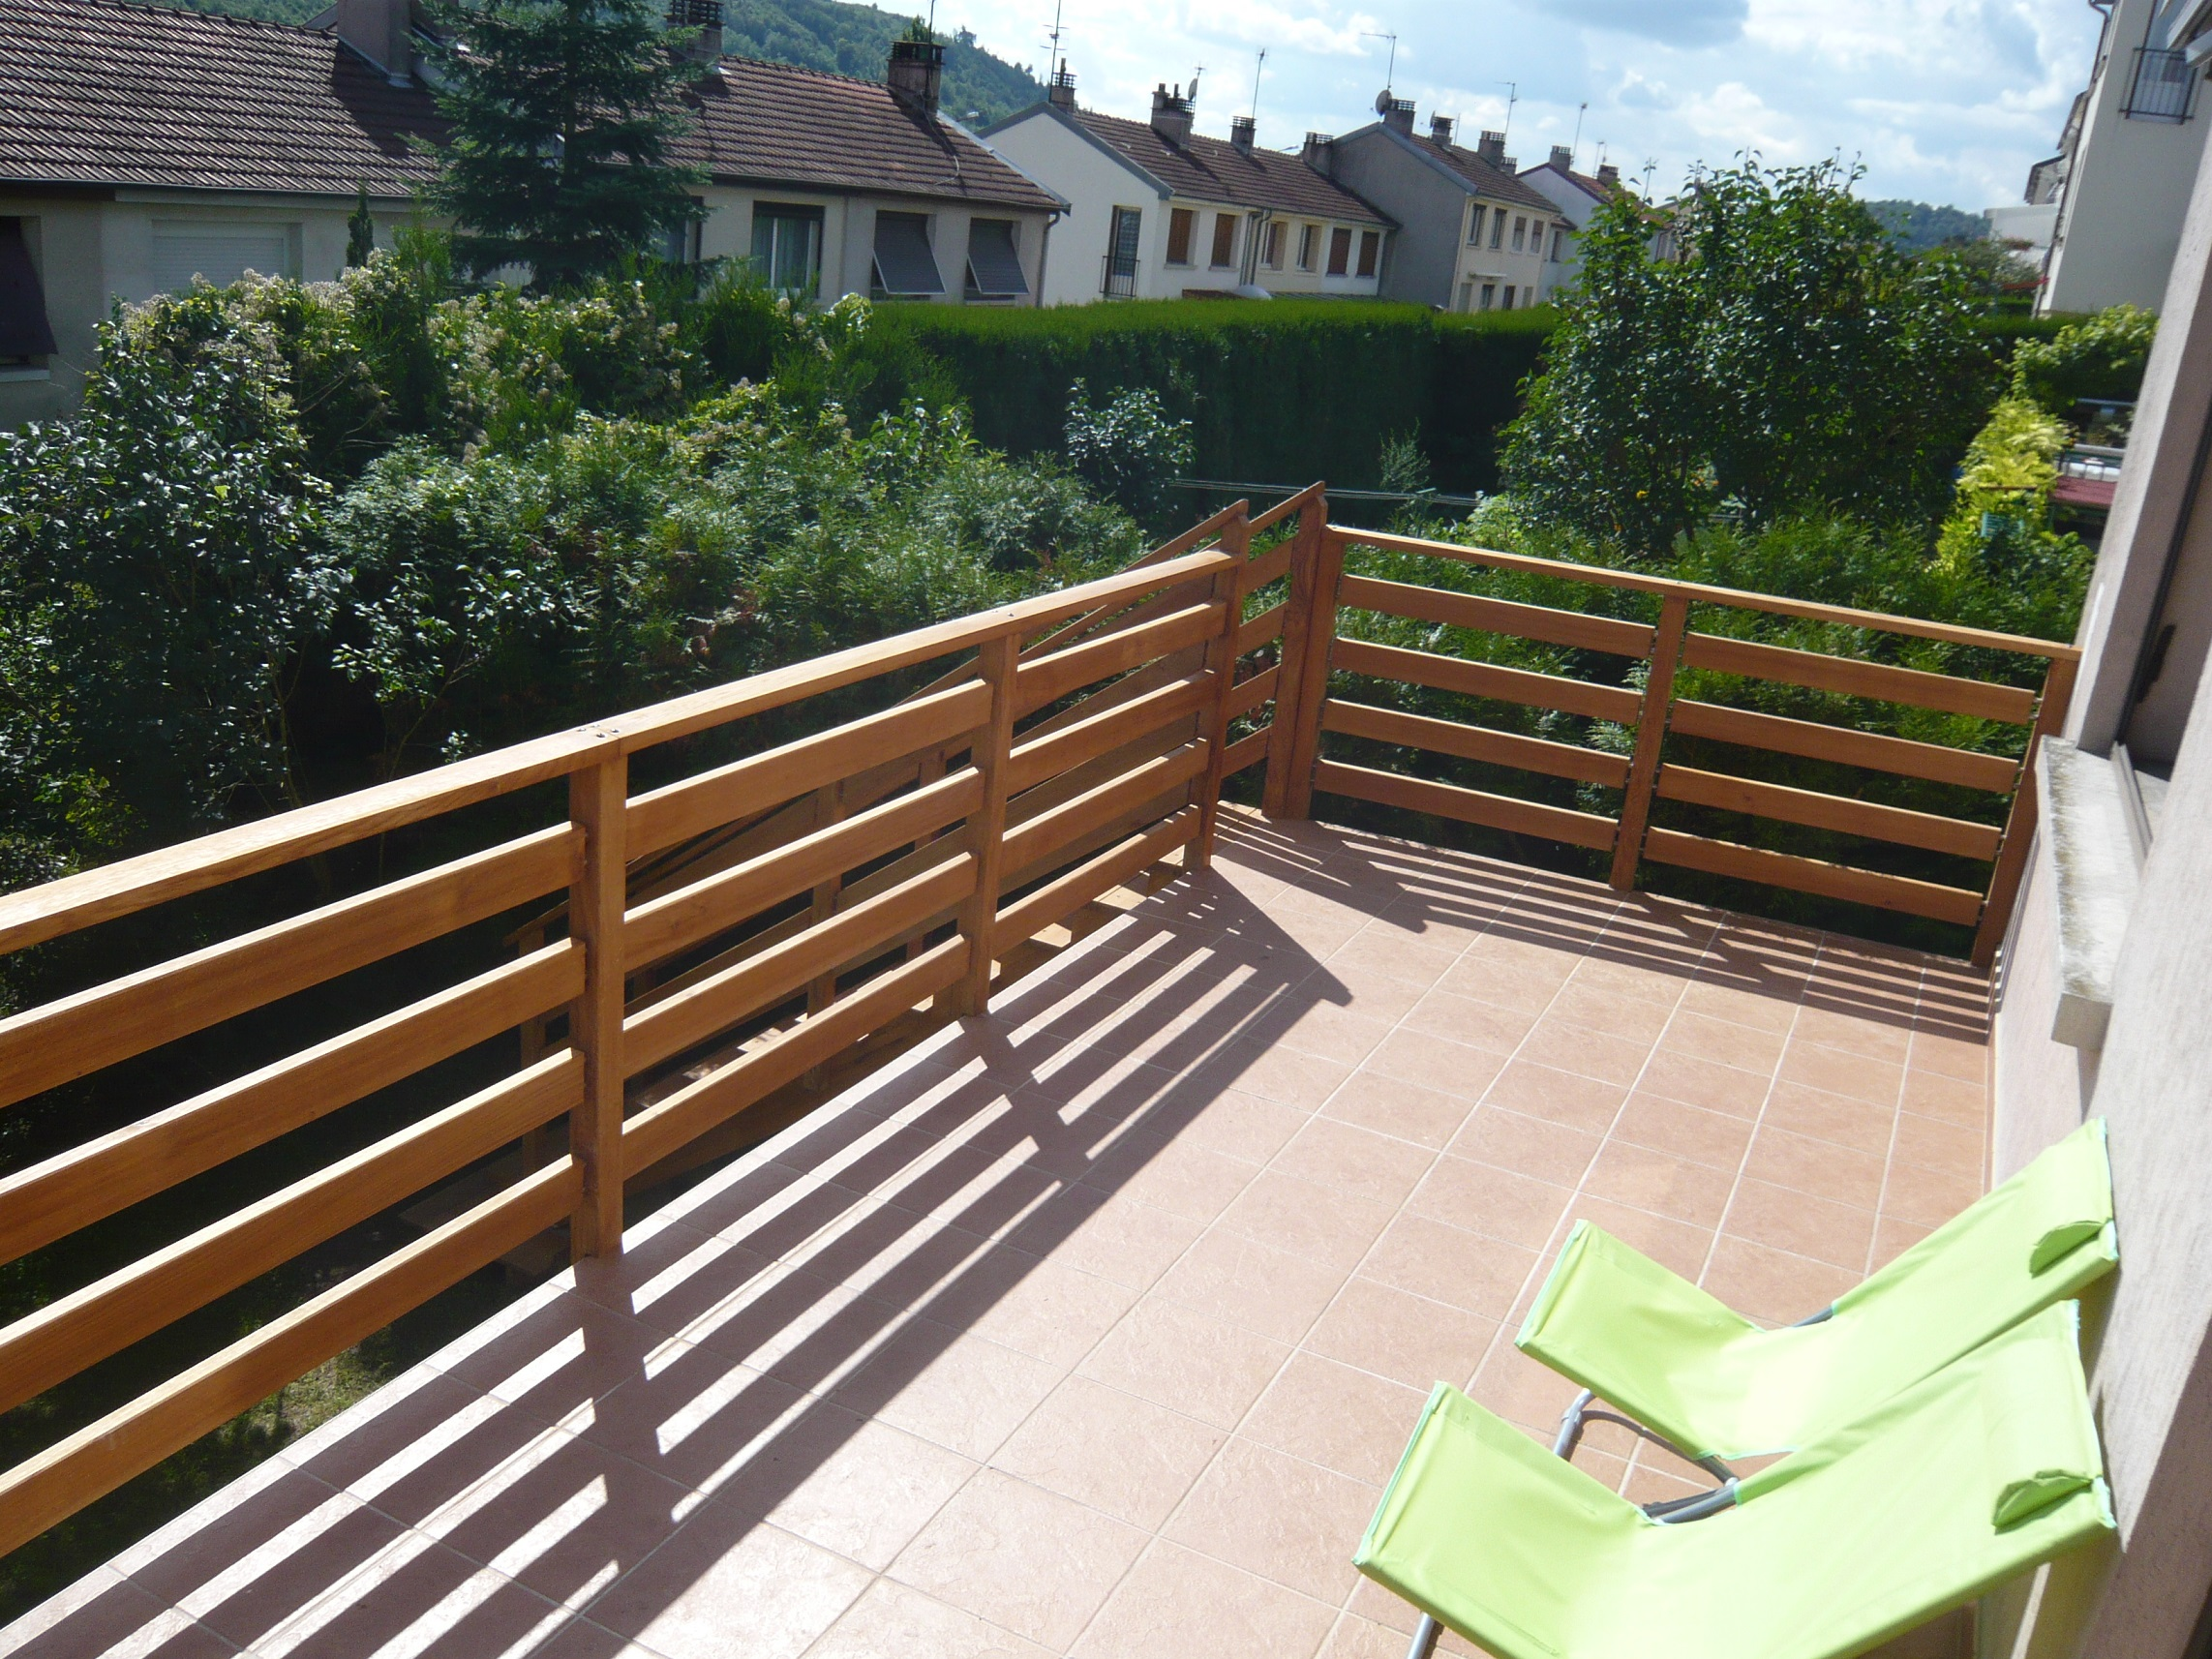 balustrade en bois pour terrasse id e int ressante pour la conception de meubles en bois qui. Black Bedroom Furniture Sets. Home Design Ideas